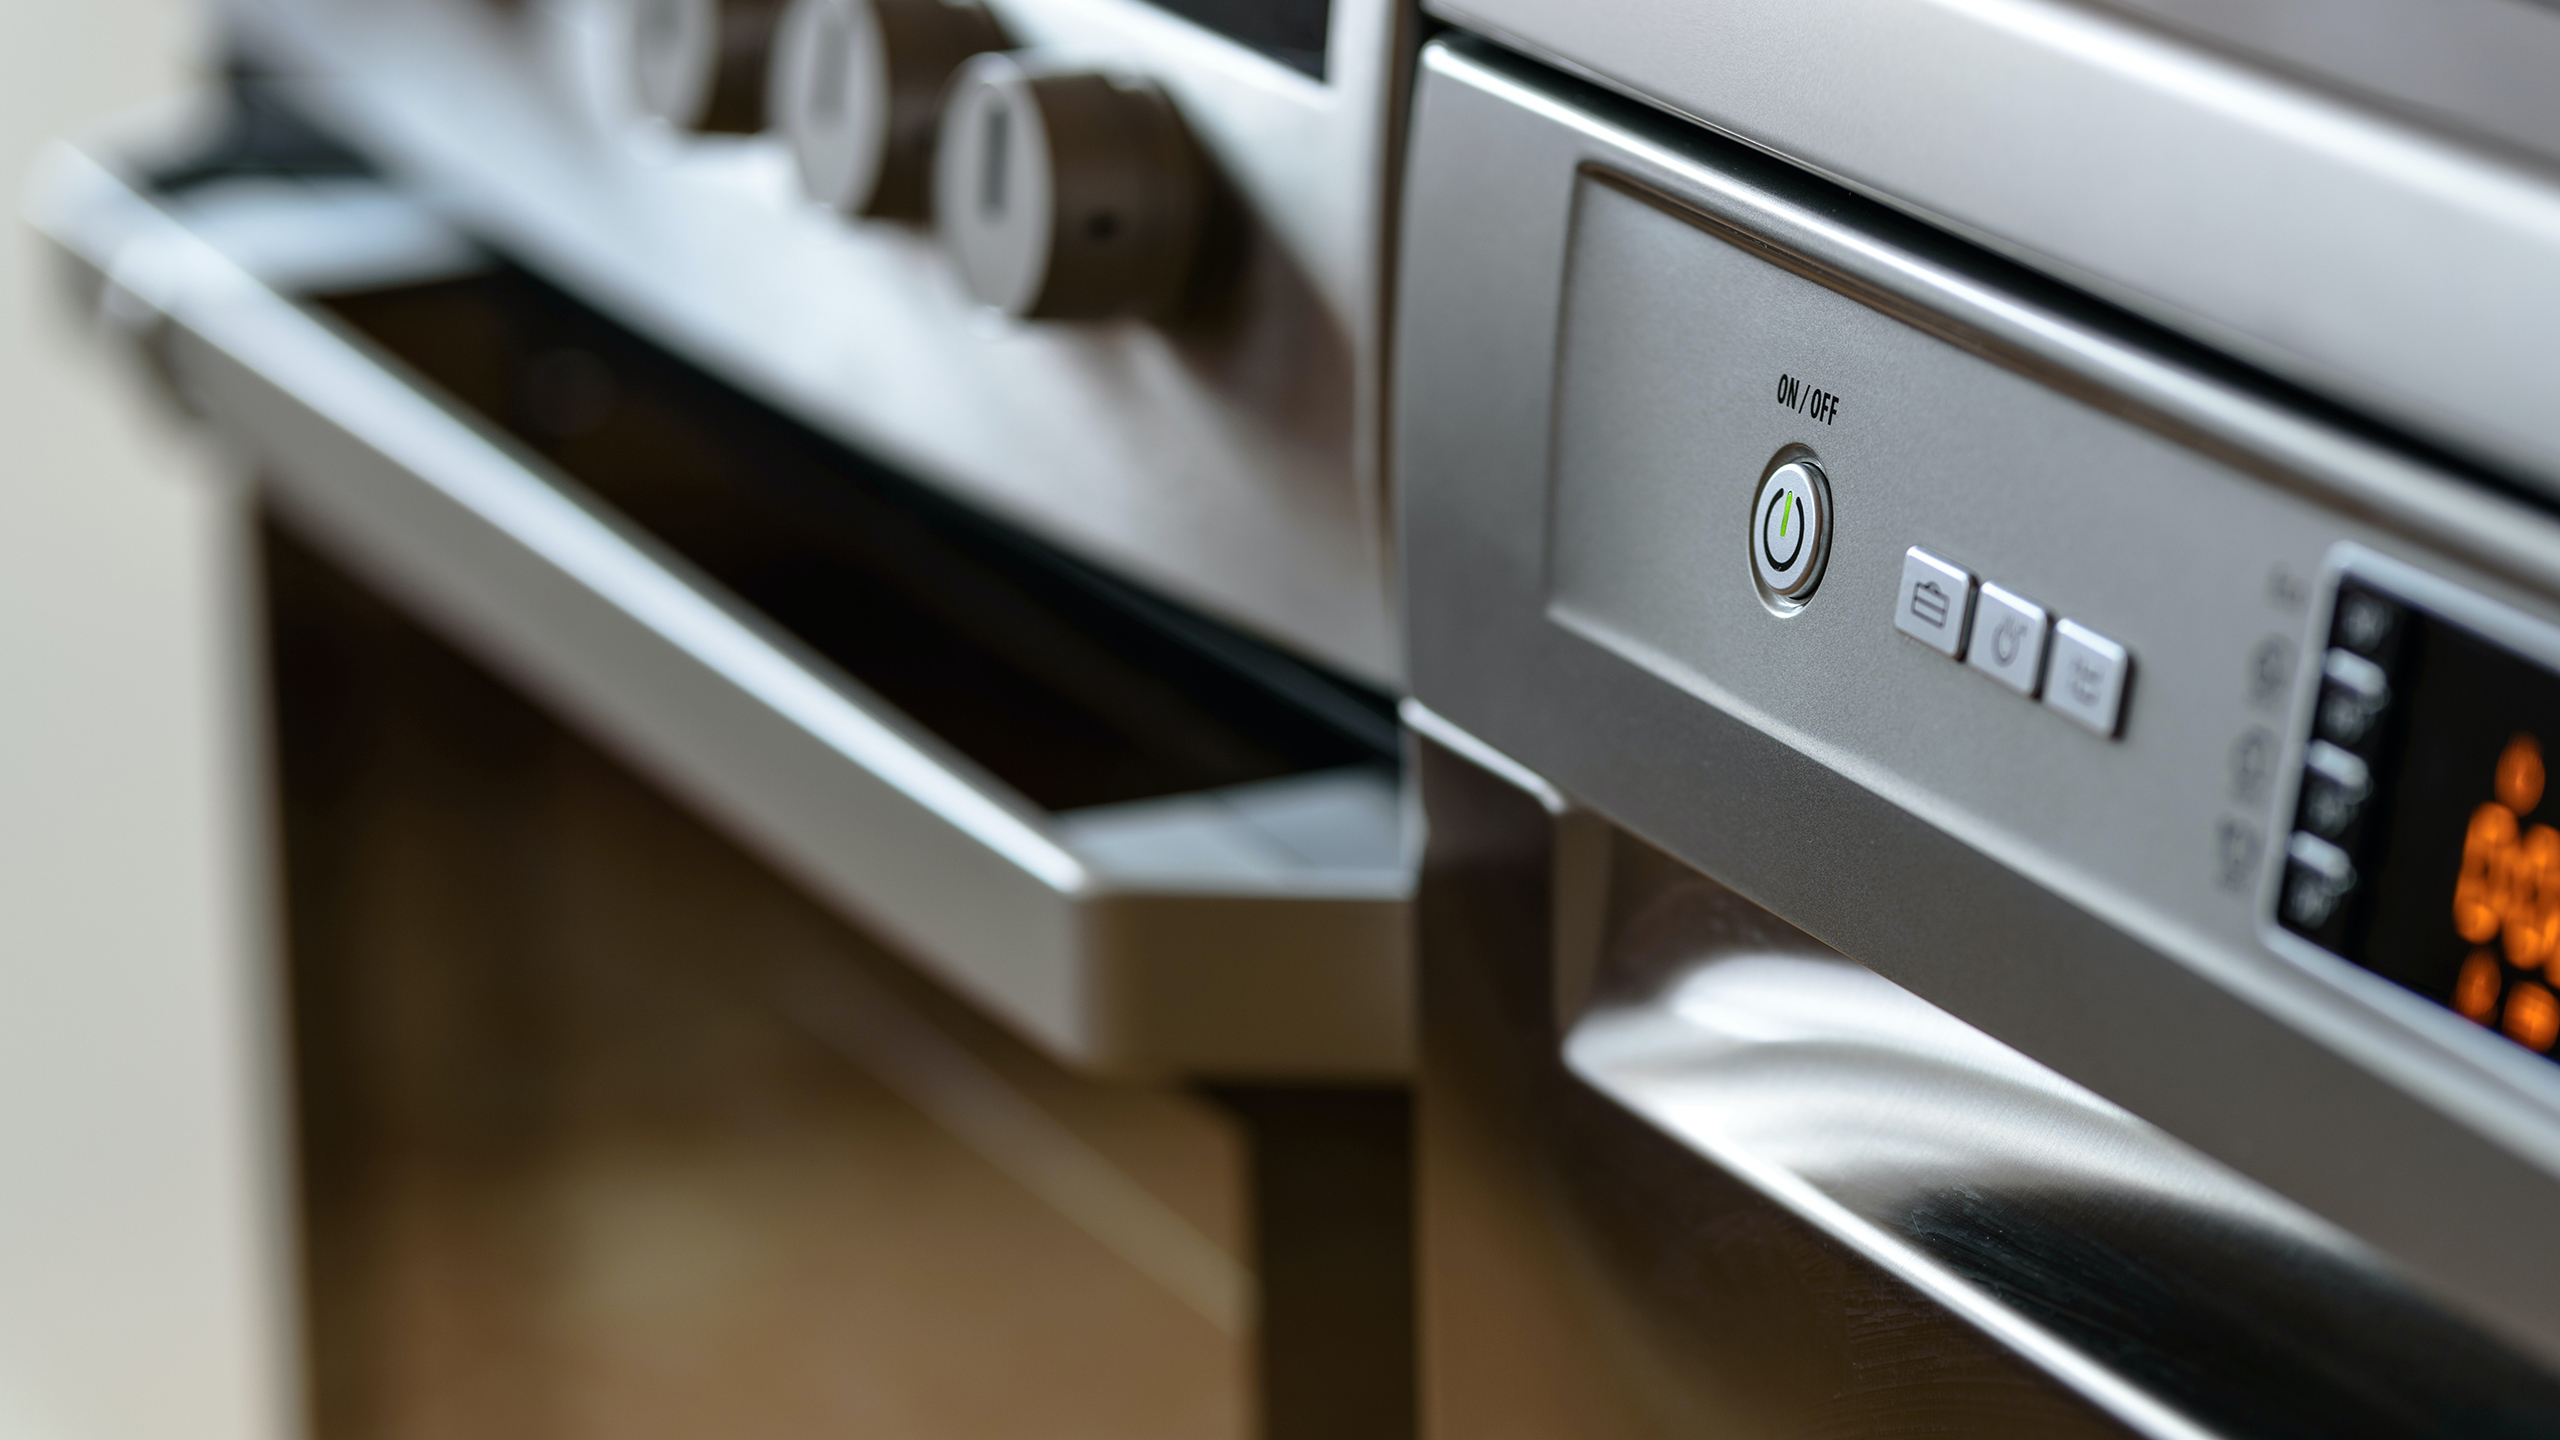 Sheltered Homes Oven Cleaning Case Study | IPSERV - Facilities Management